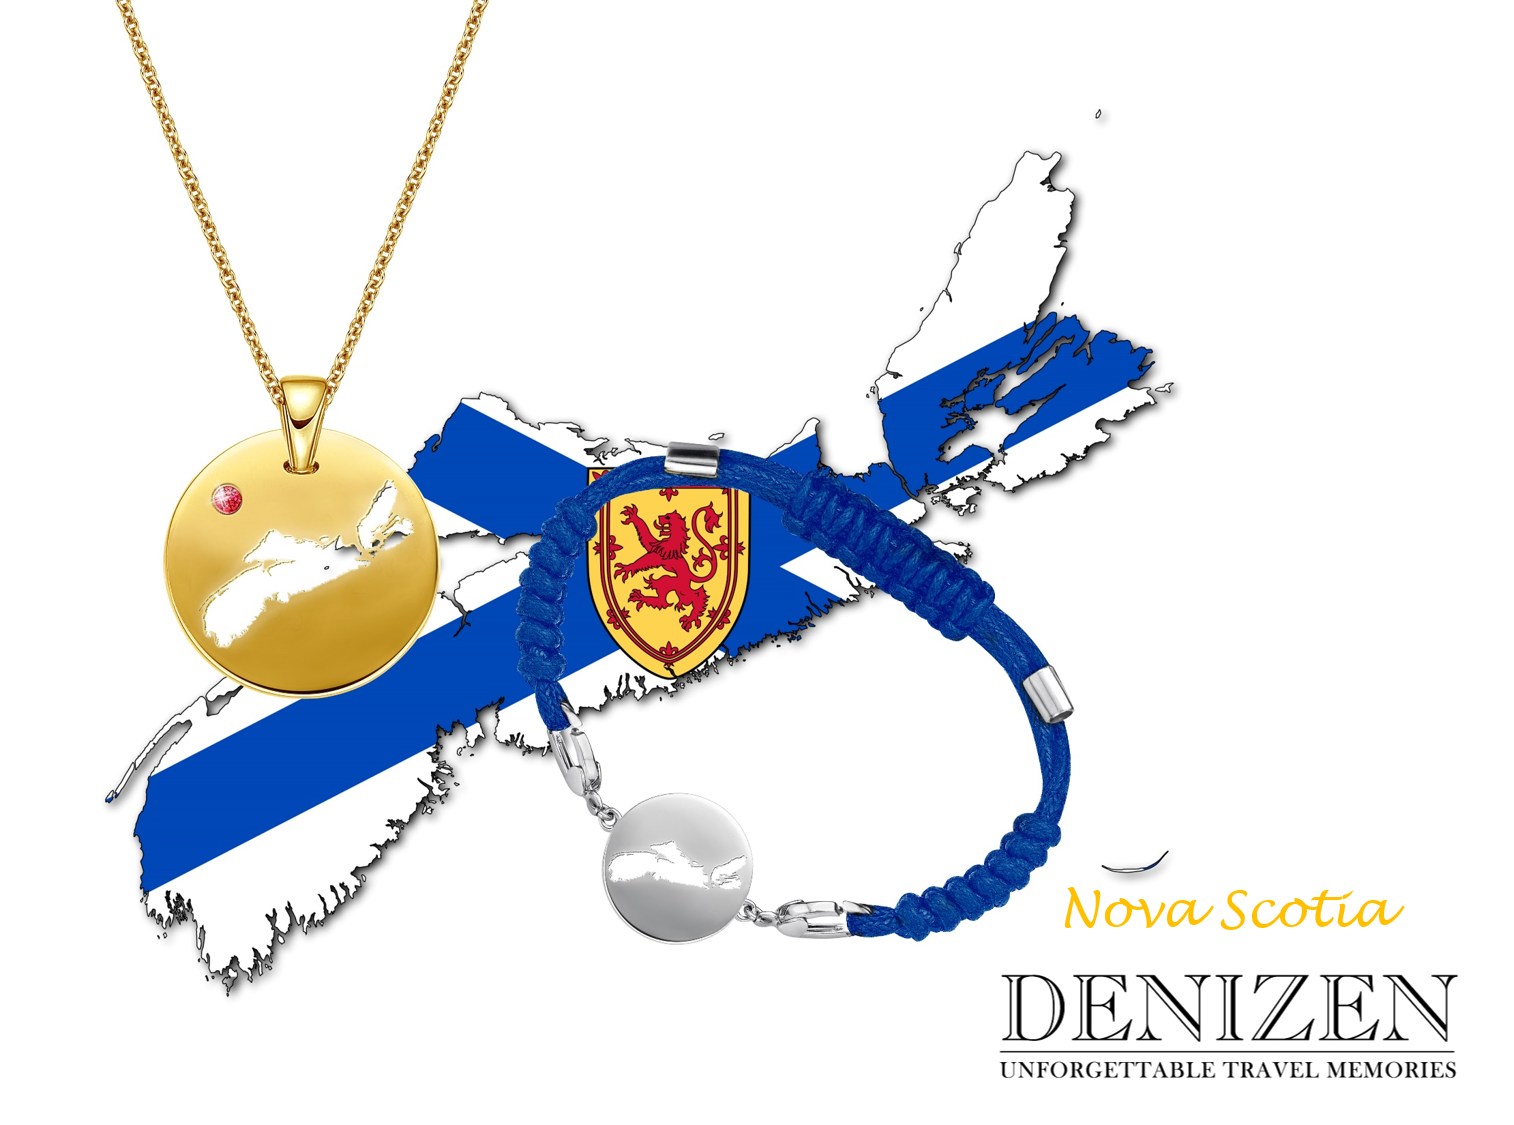 denizen bracelet and necklace of Nova Scotia